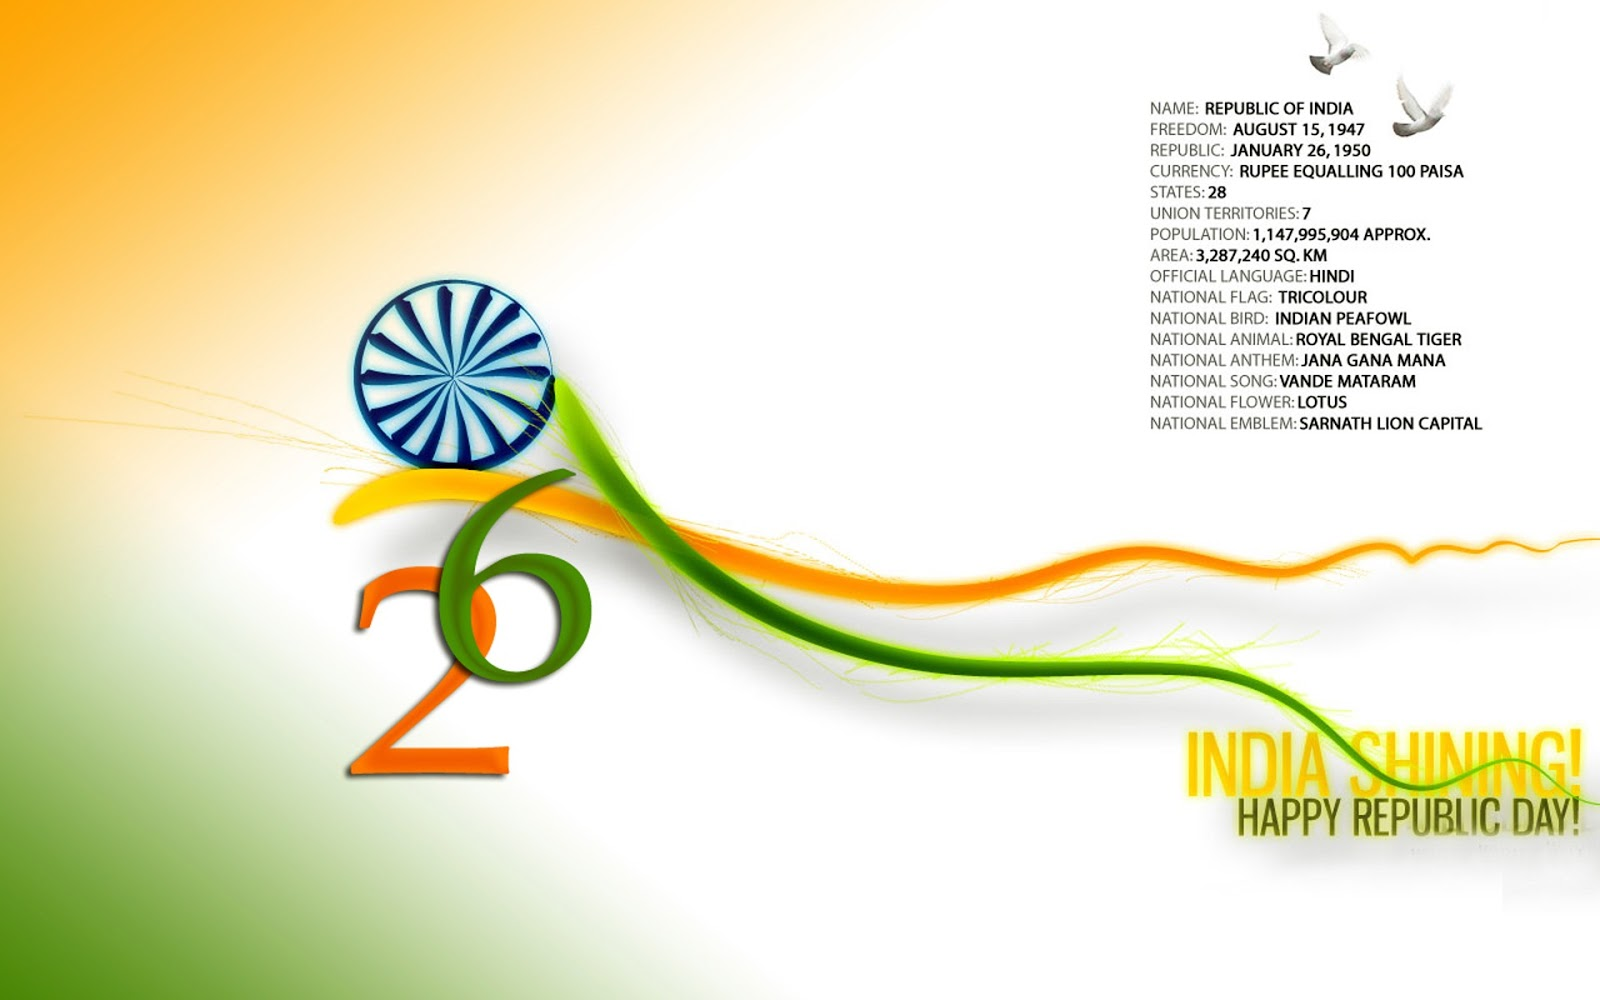 Happy Republic Day 2018 Images Hd Pics Download Photos For 26th January 2018  | Happy Republic Day 2018 Wishes Quotes Wallpapers Live Information